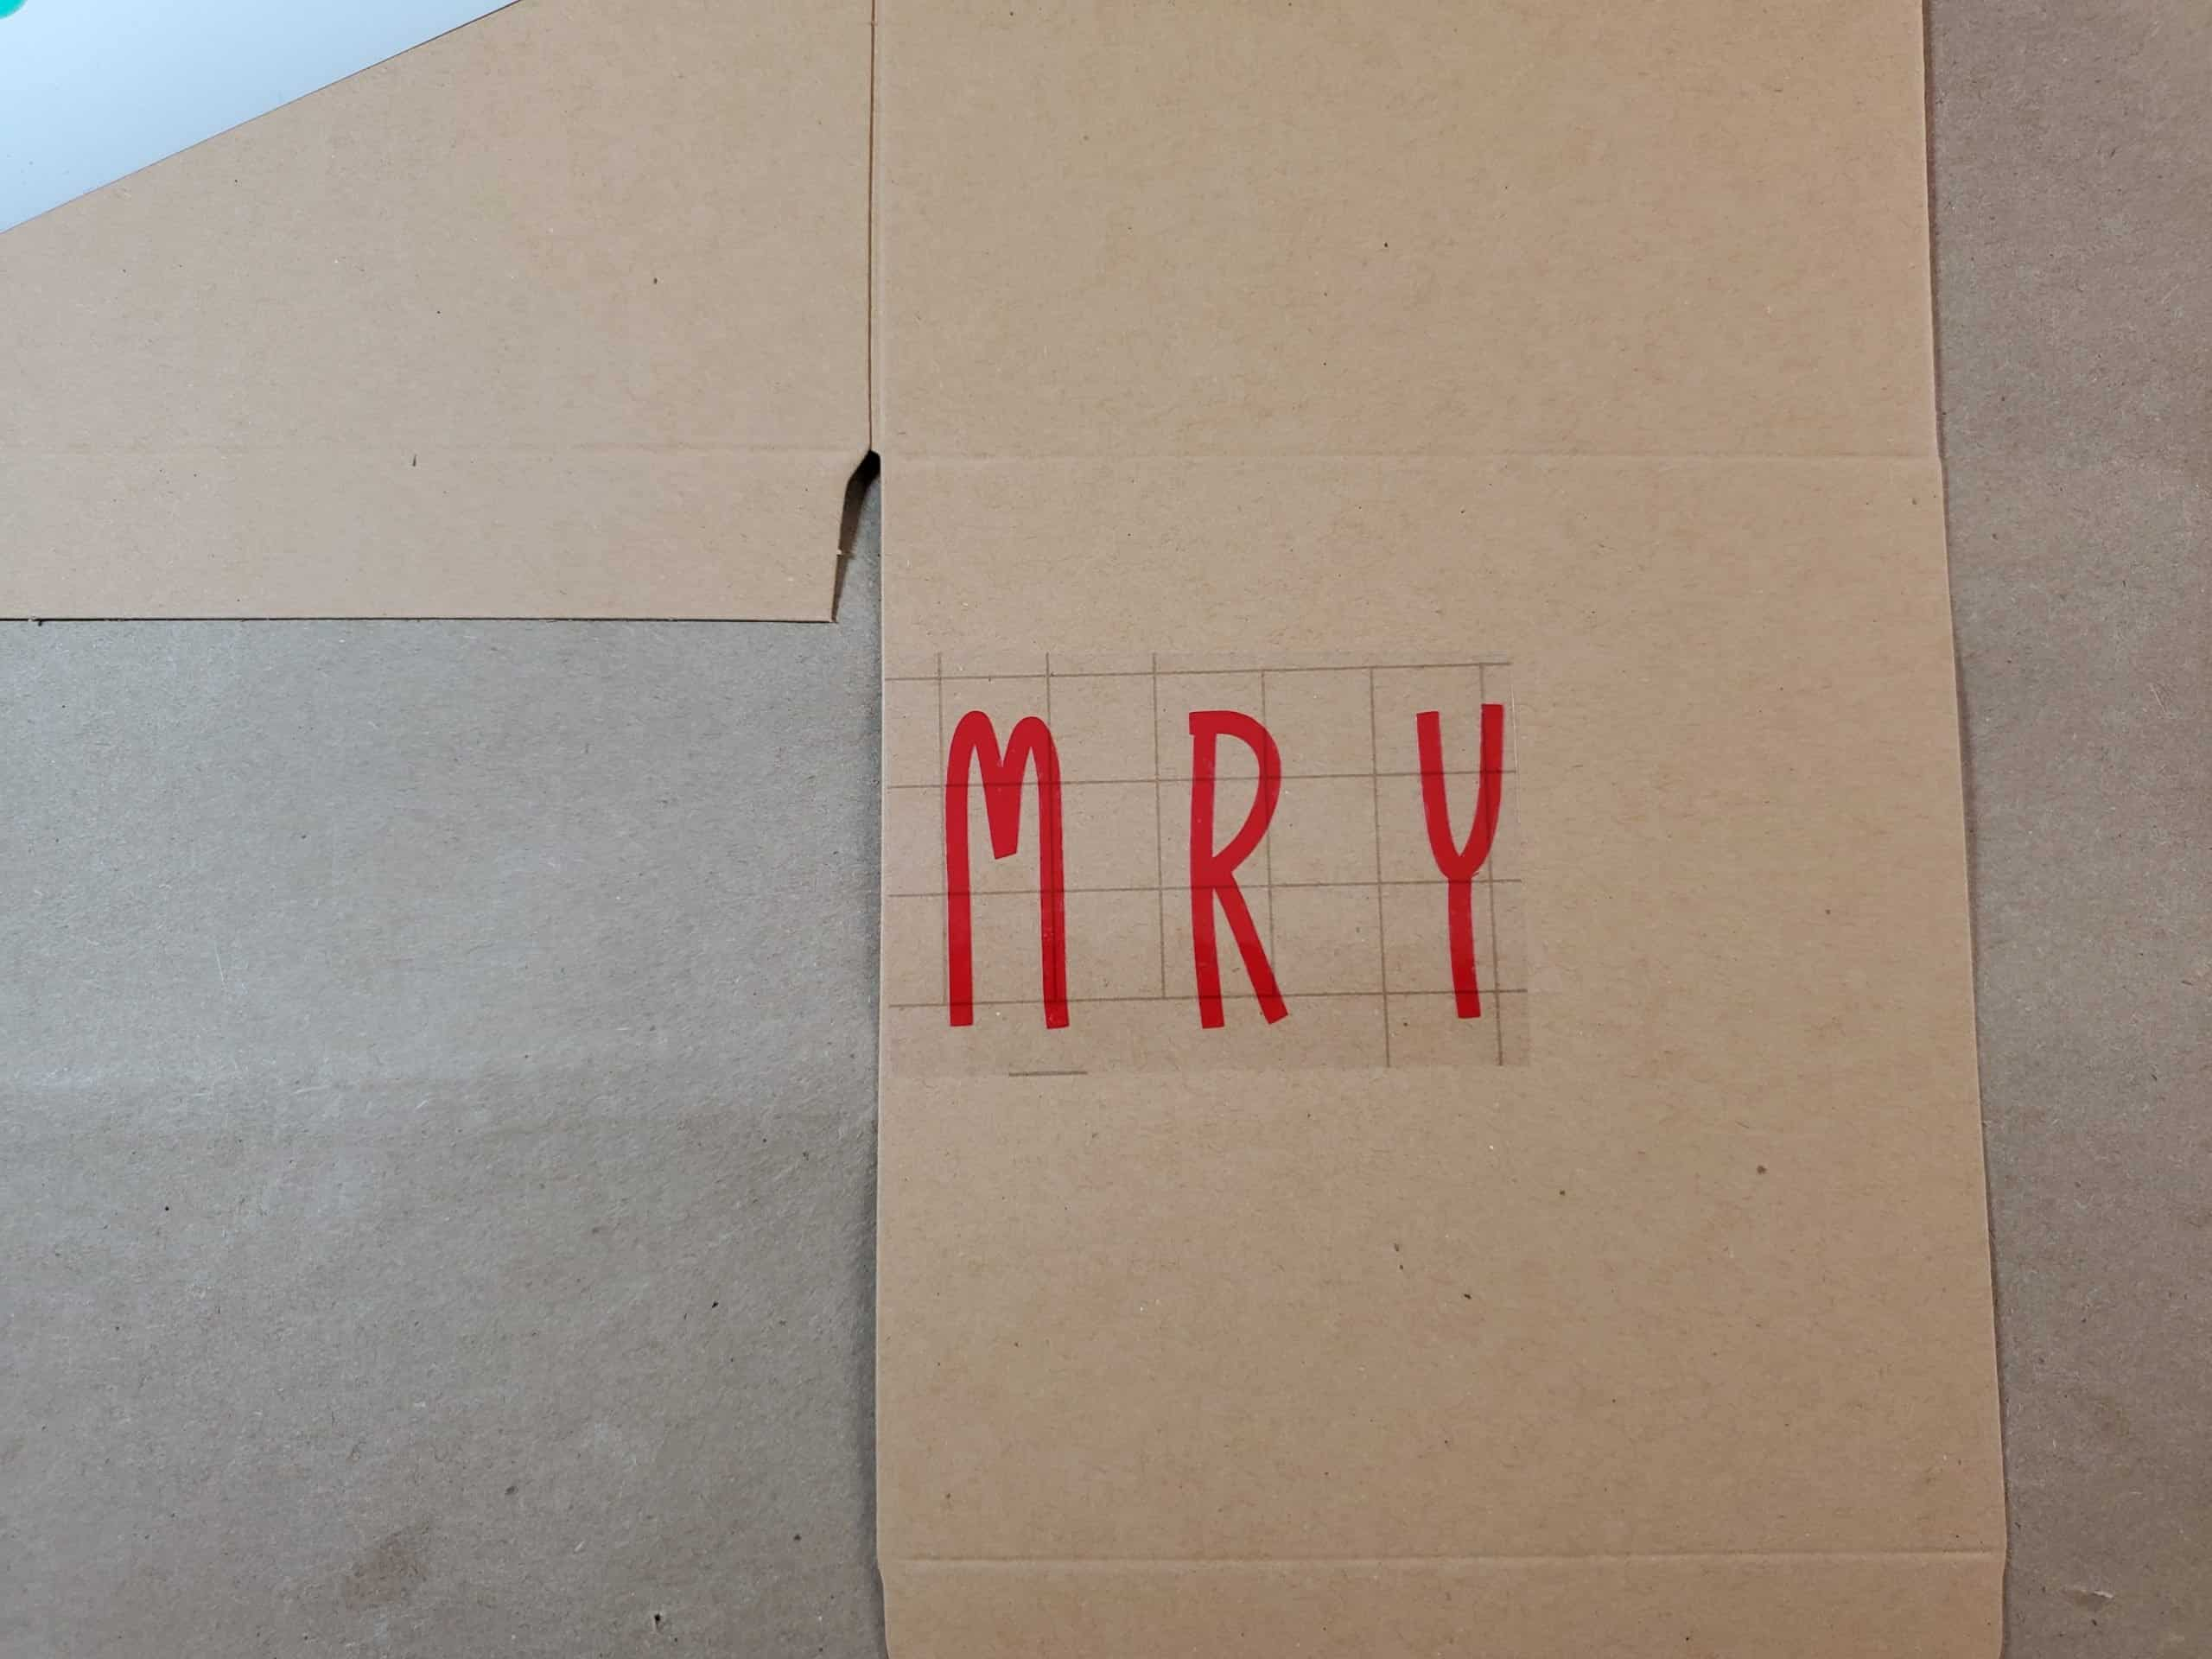 Attaching the M R Y (in Merry) to Box using transfer tape